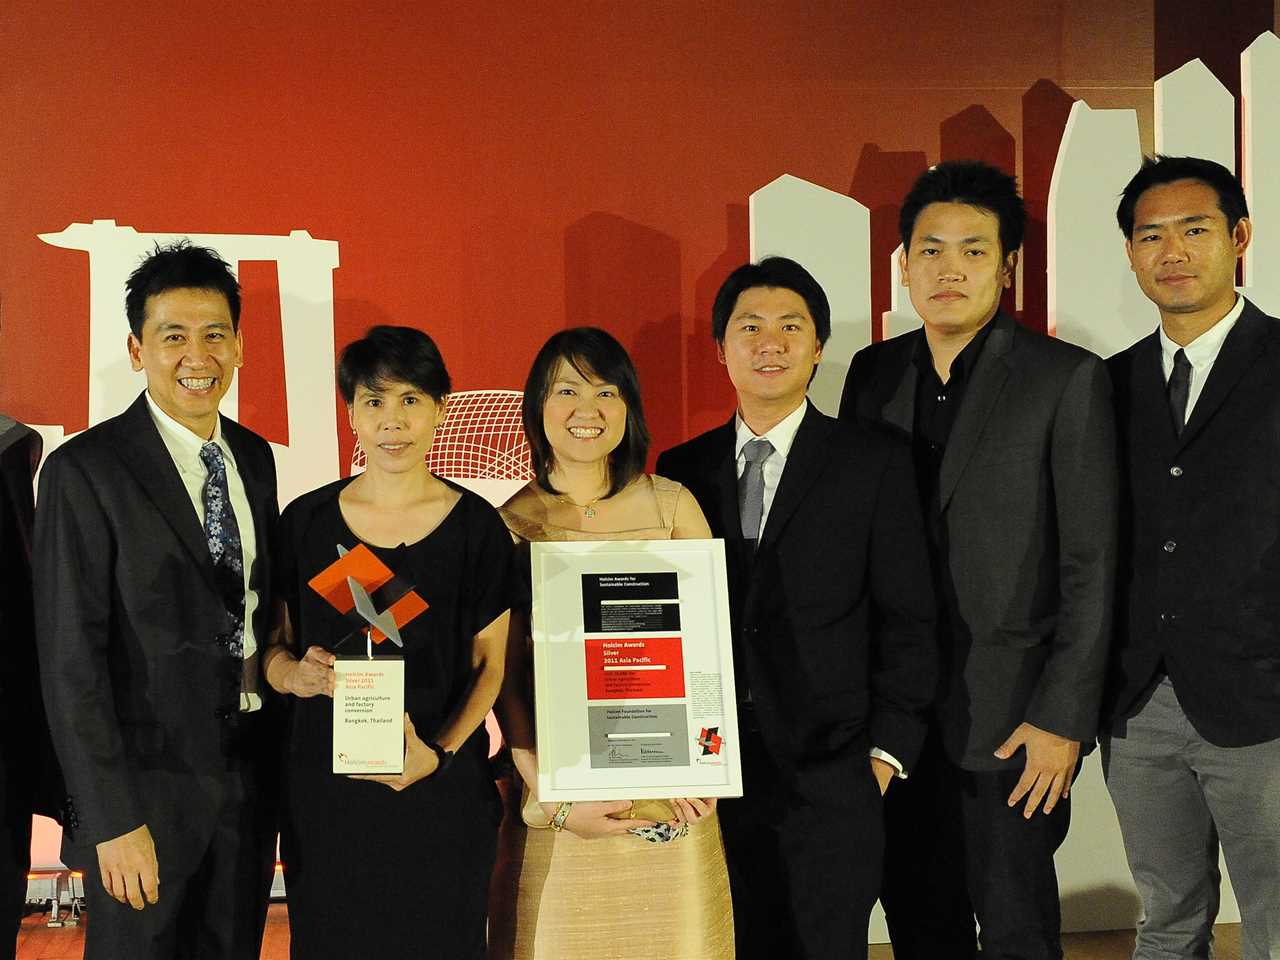 Holcim Awards 2011 ceremony for Asia Pacific – Singapore